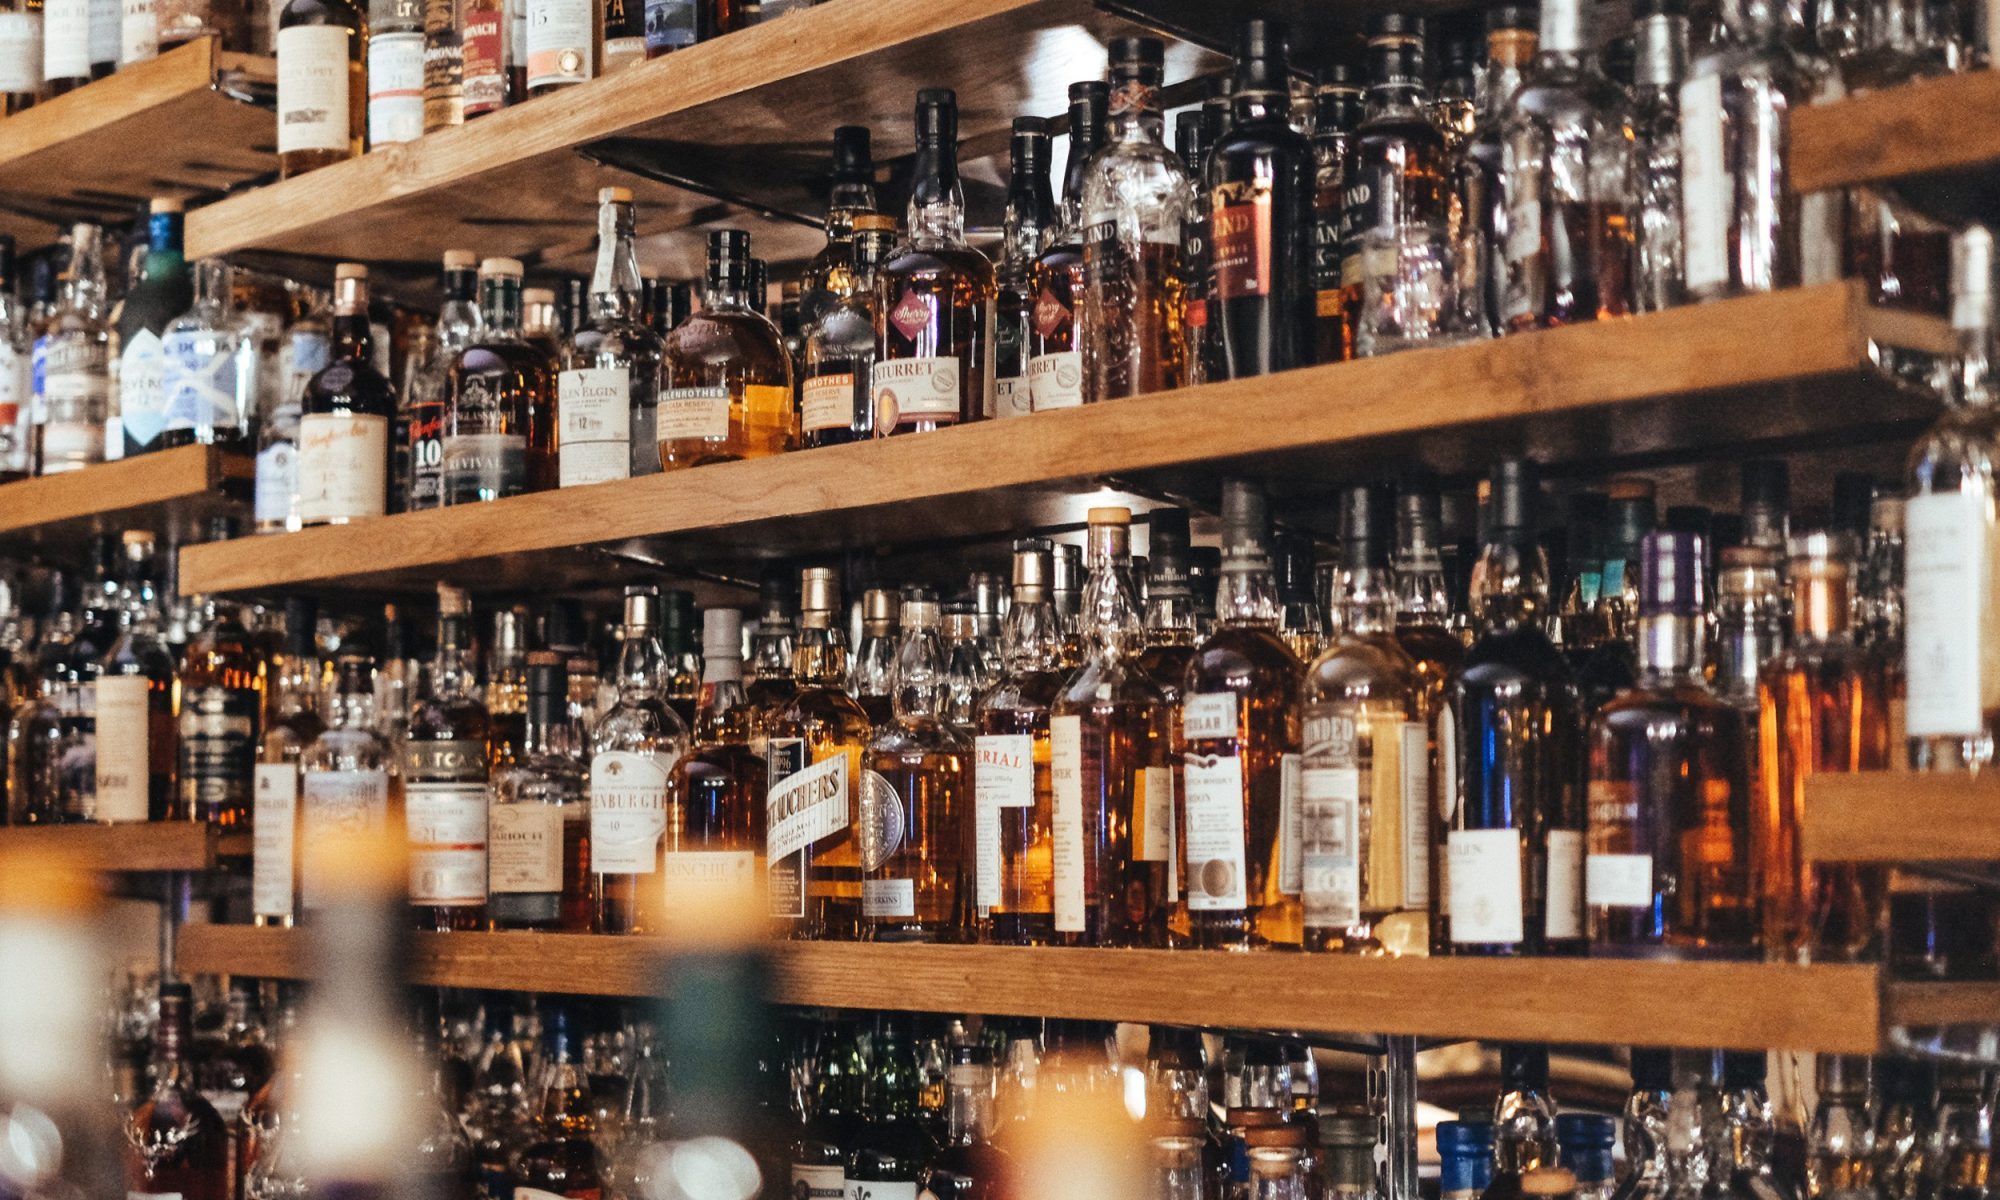 EC: French Thieves Steal $800,000 of Rare Whisky from Parisian Liquor Store